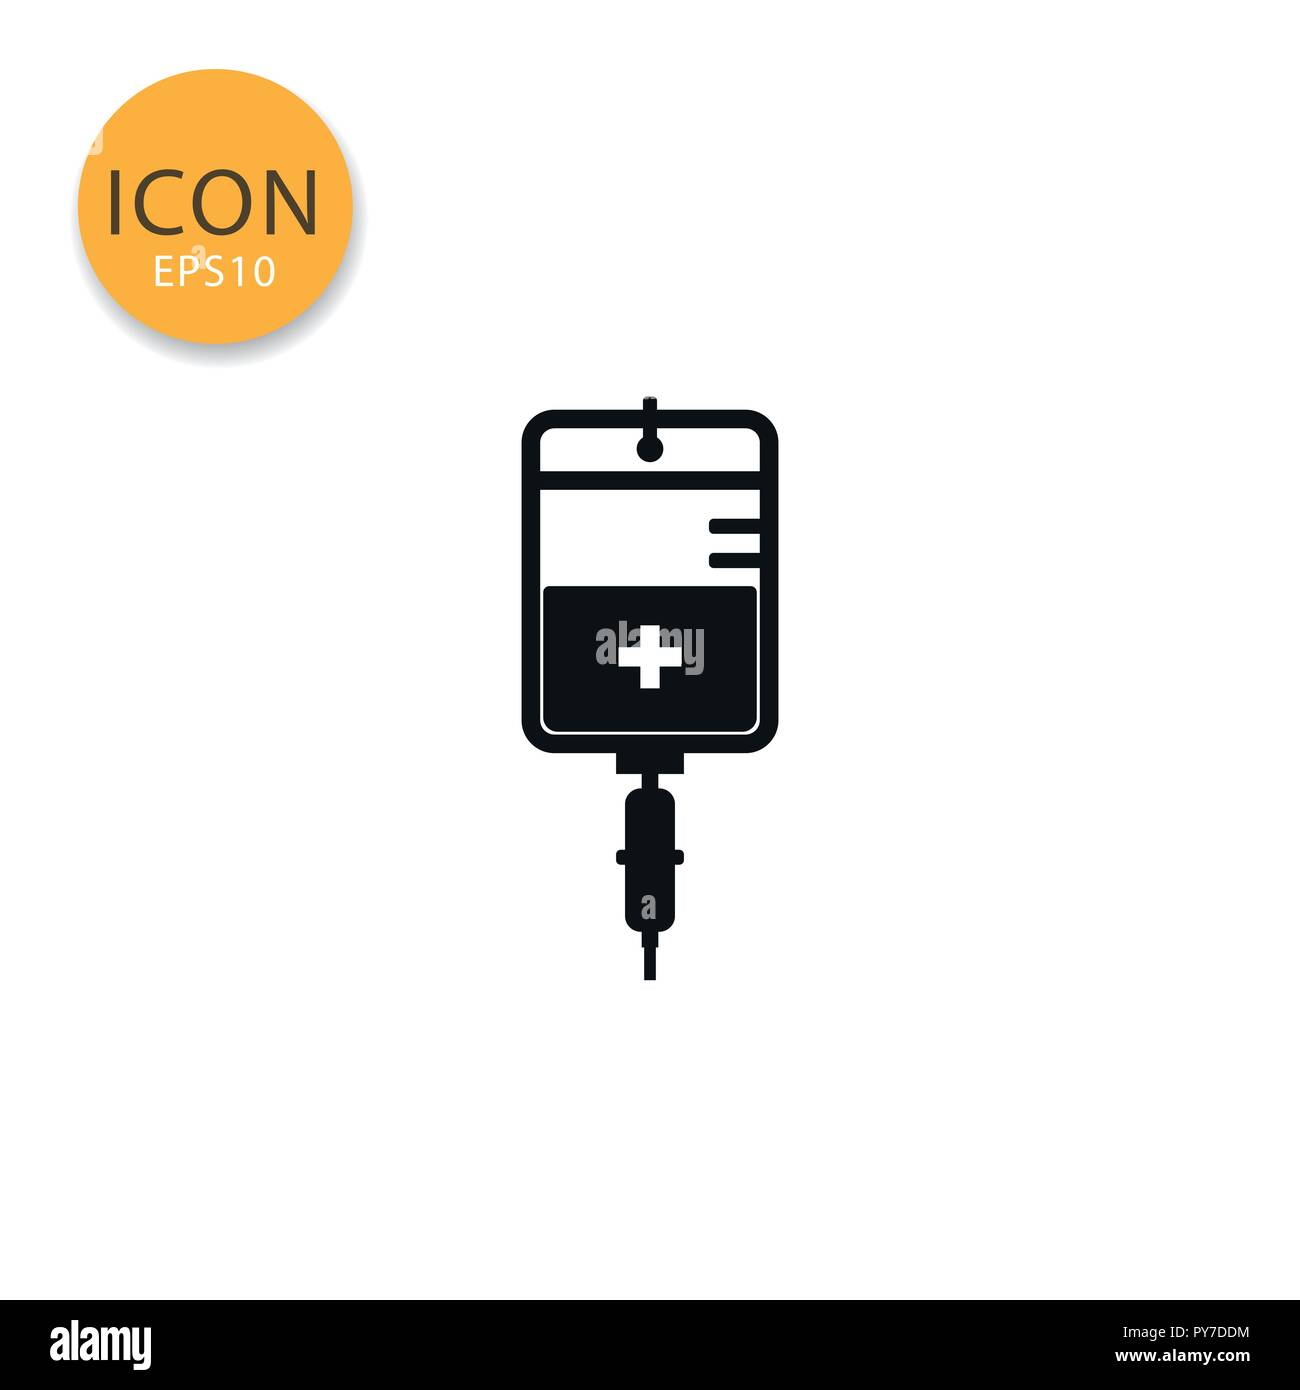 IV bag icon flat style in black color vector illustration on white background. - Stock Vector